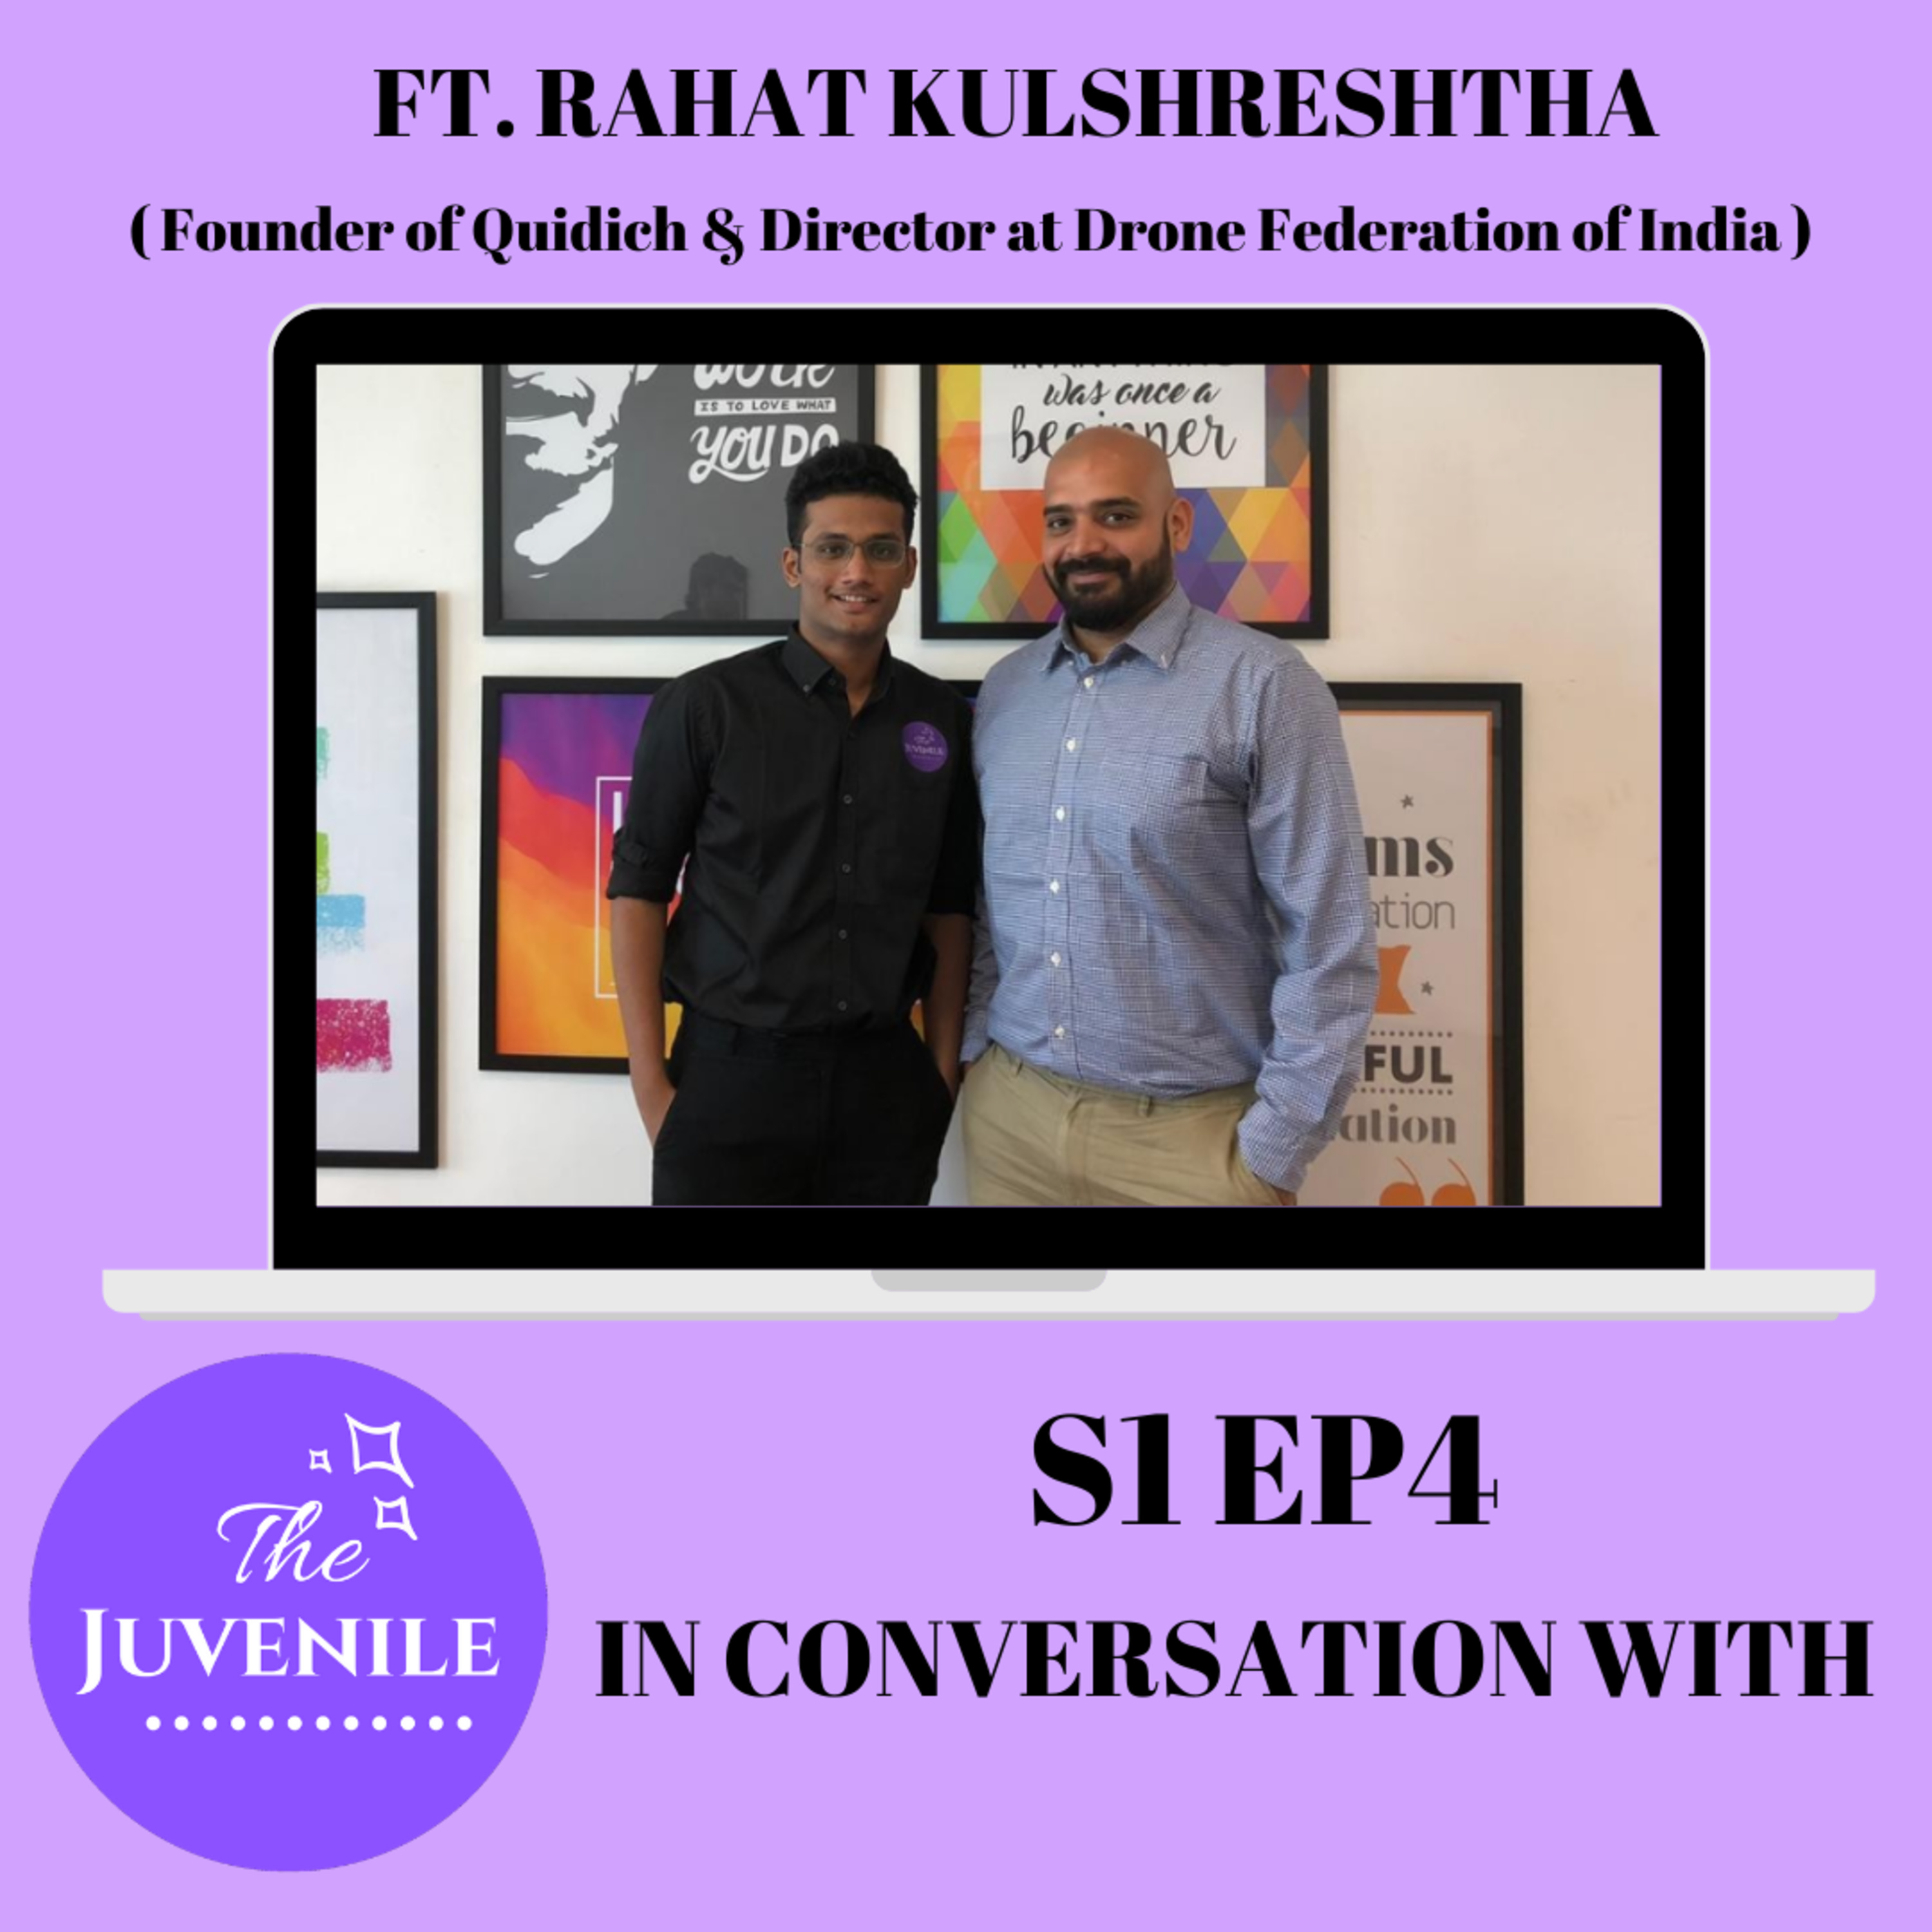 IN CONVERSATION WITH FT. RAHAT KULSRESHTHA